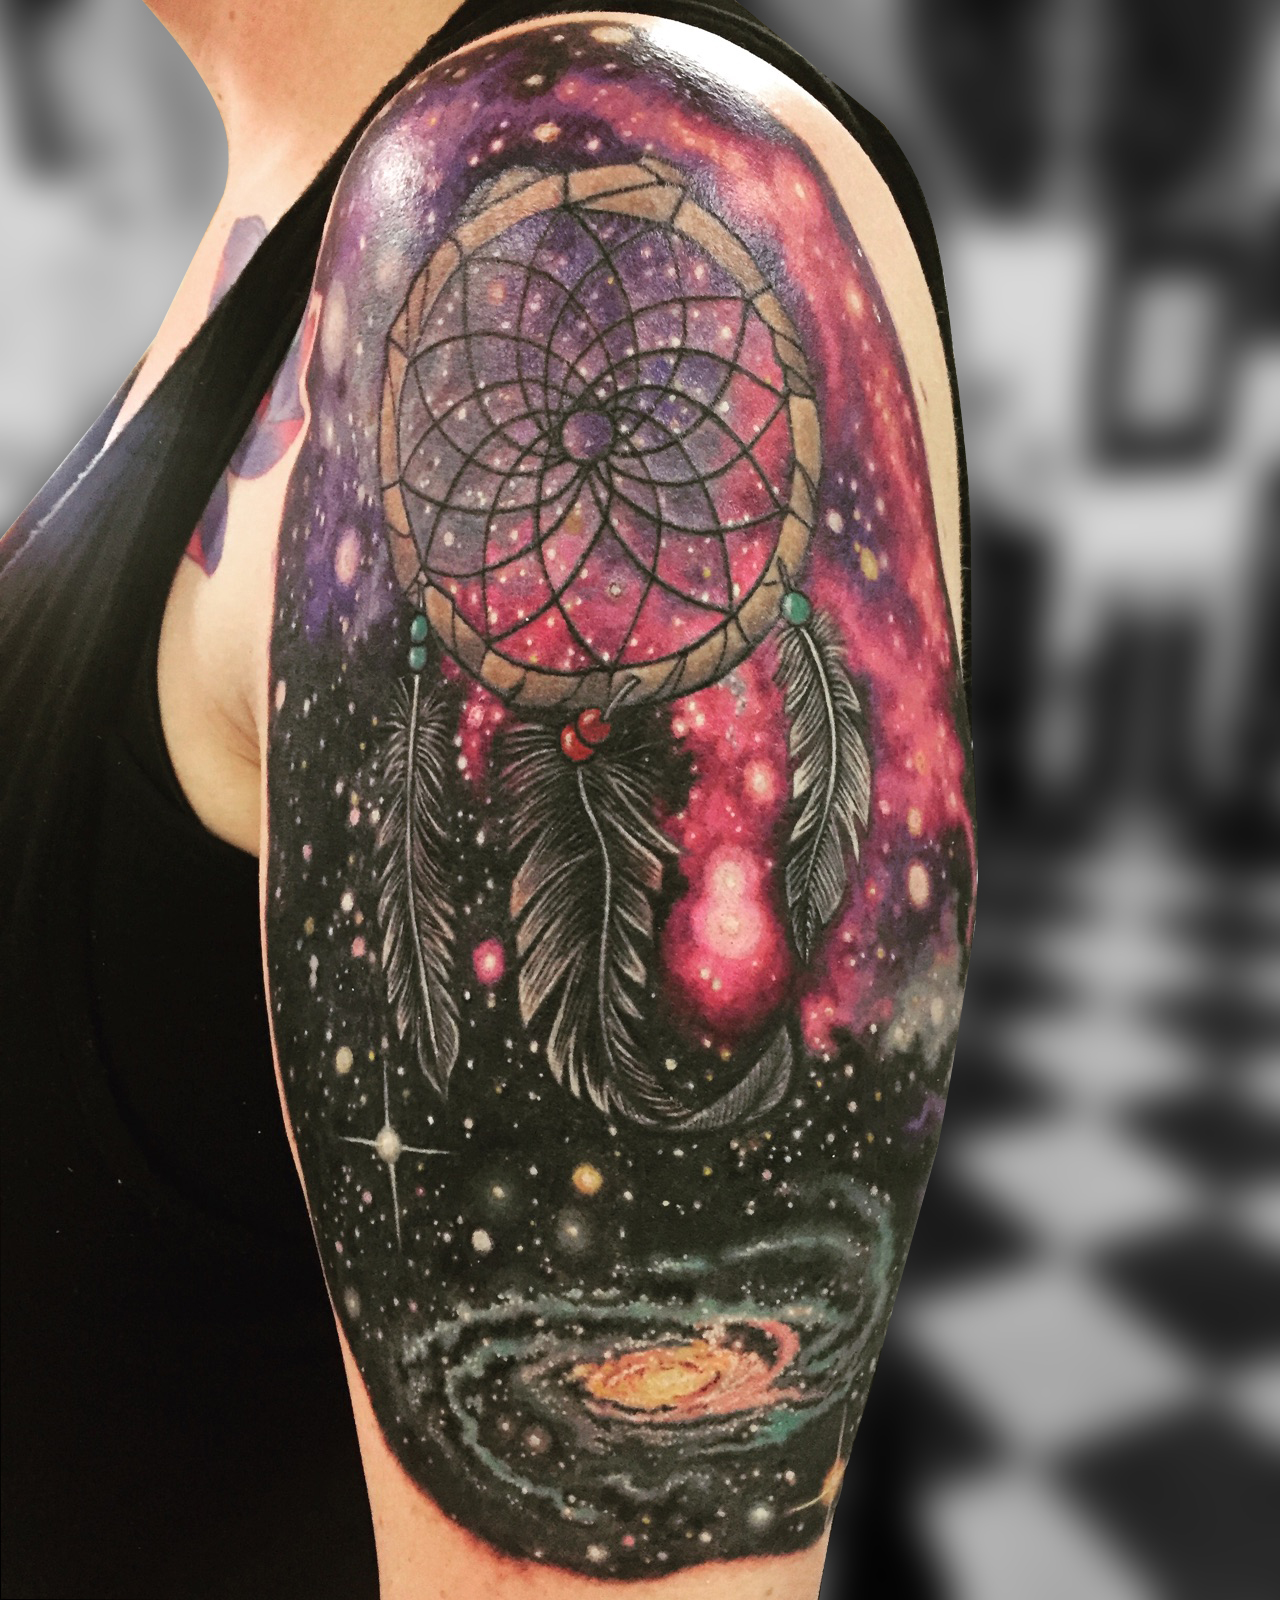 Q Tattoo in Huntington Beach - Karel Beck - the dreamcatcher